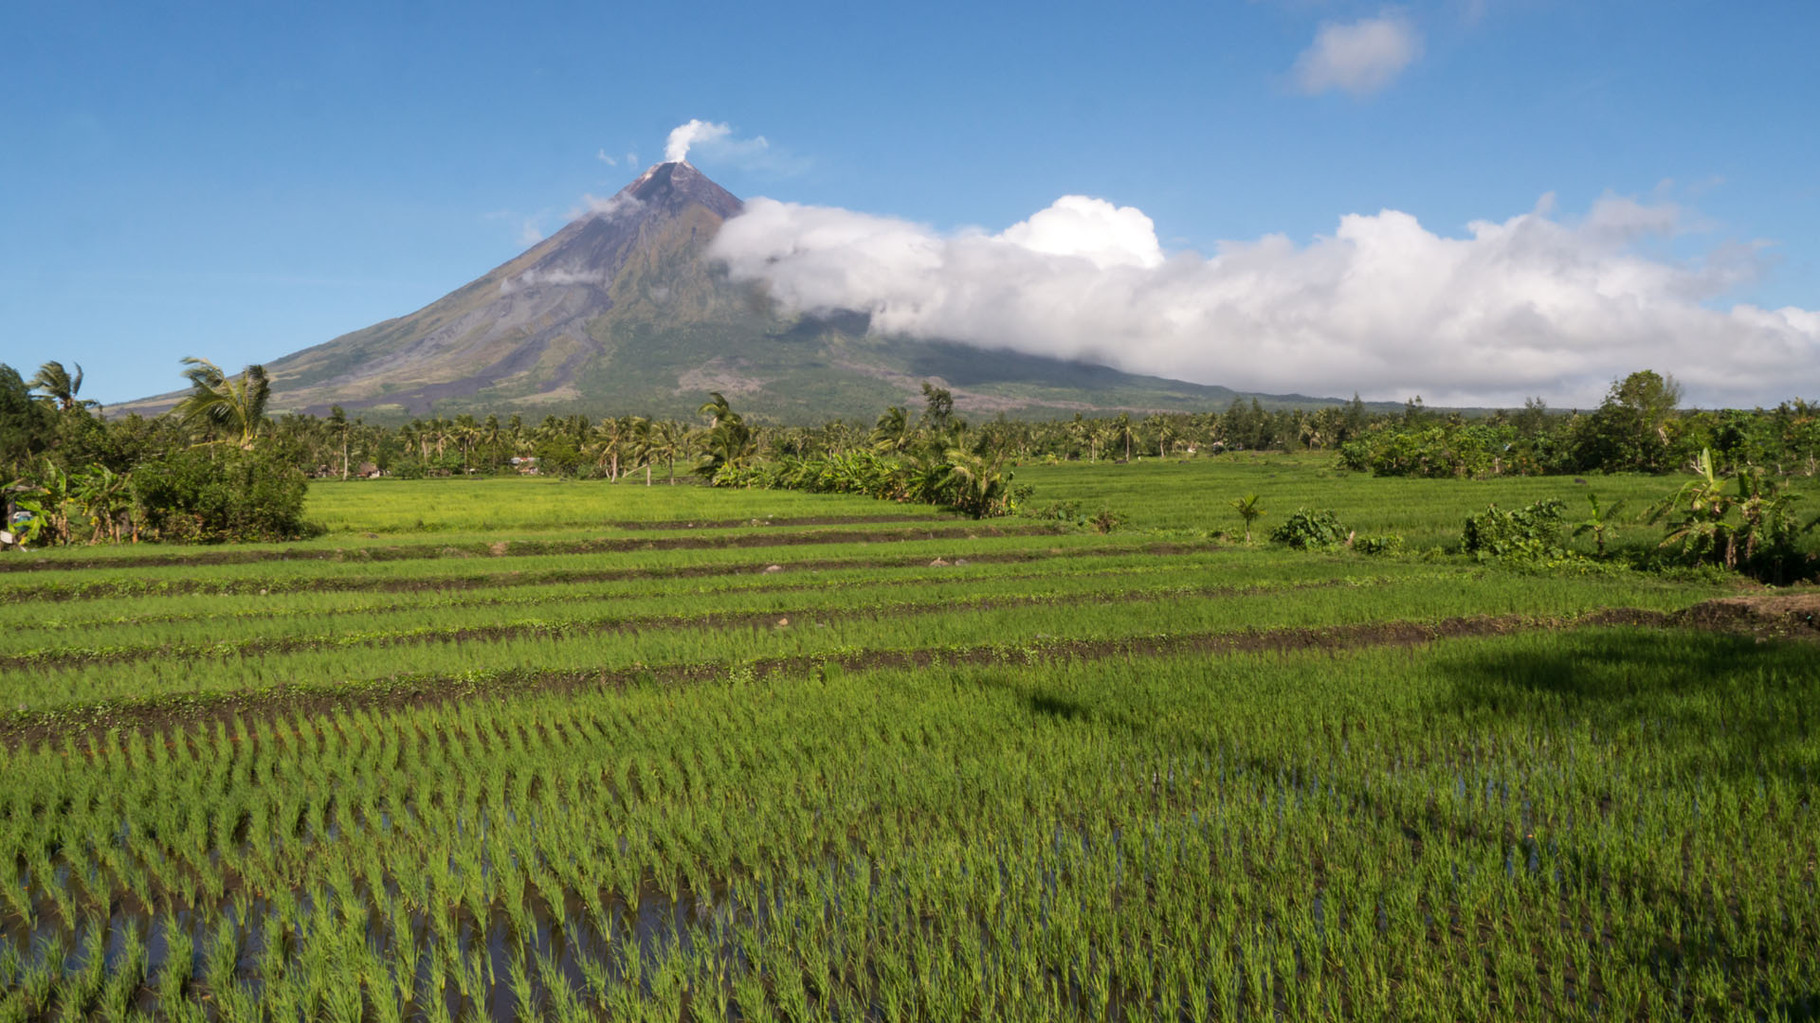 Mayon, Philippines [2015]